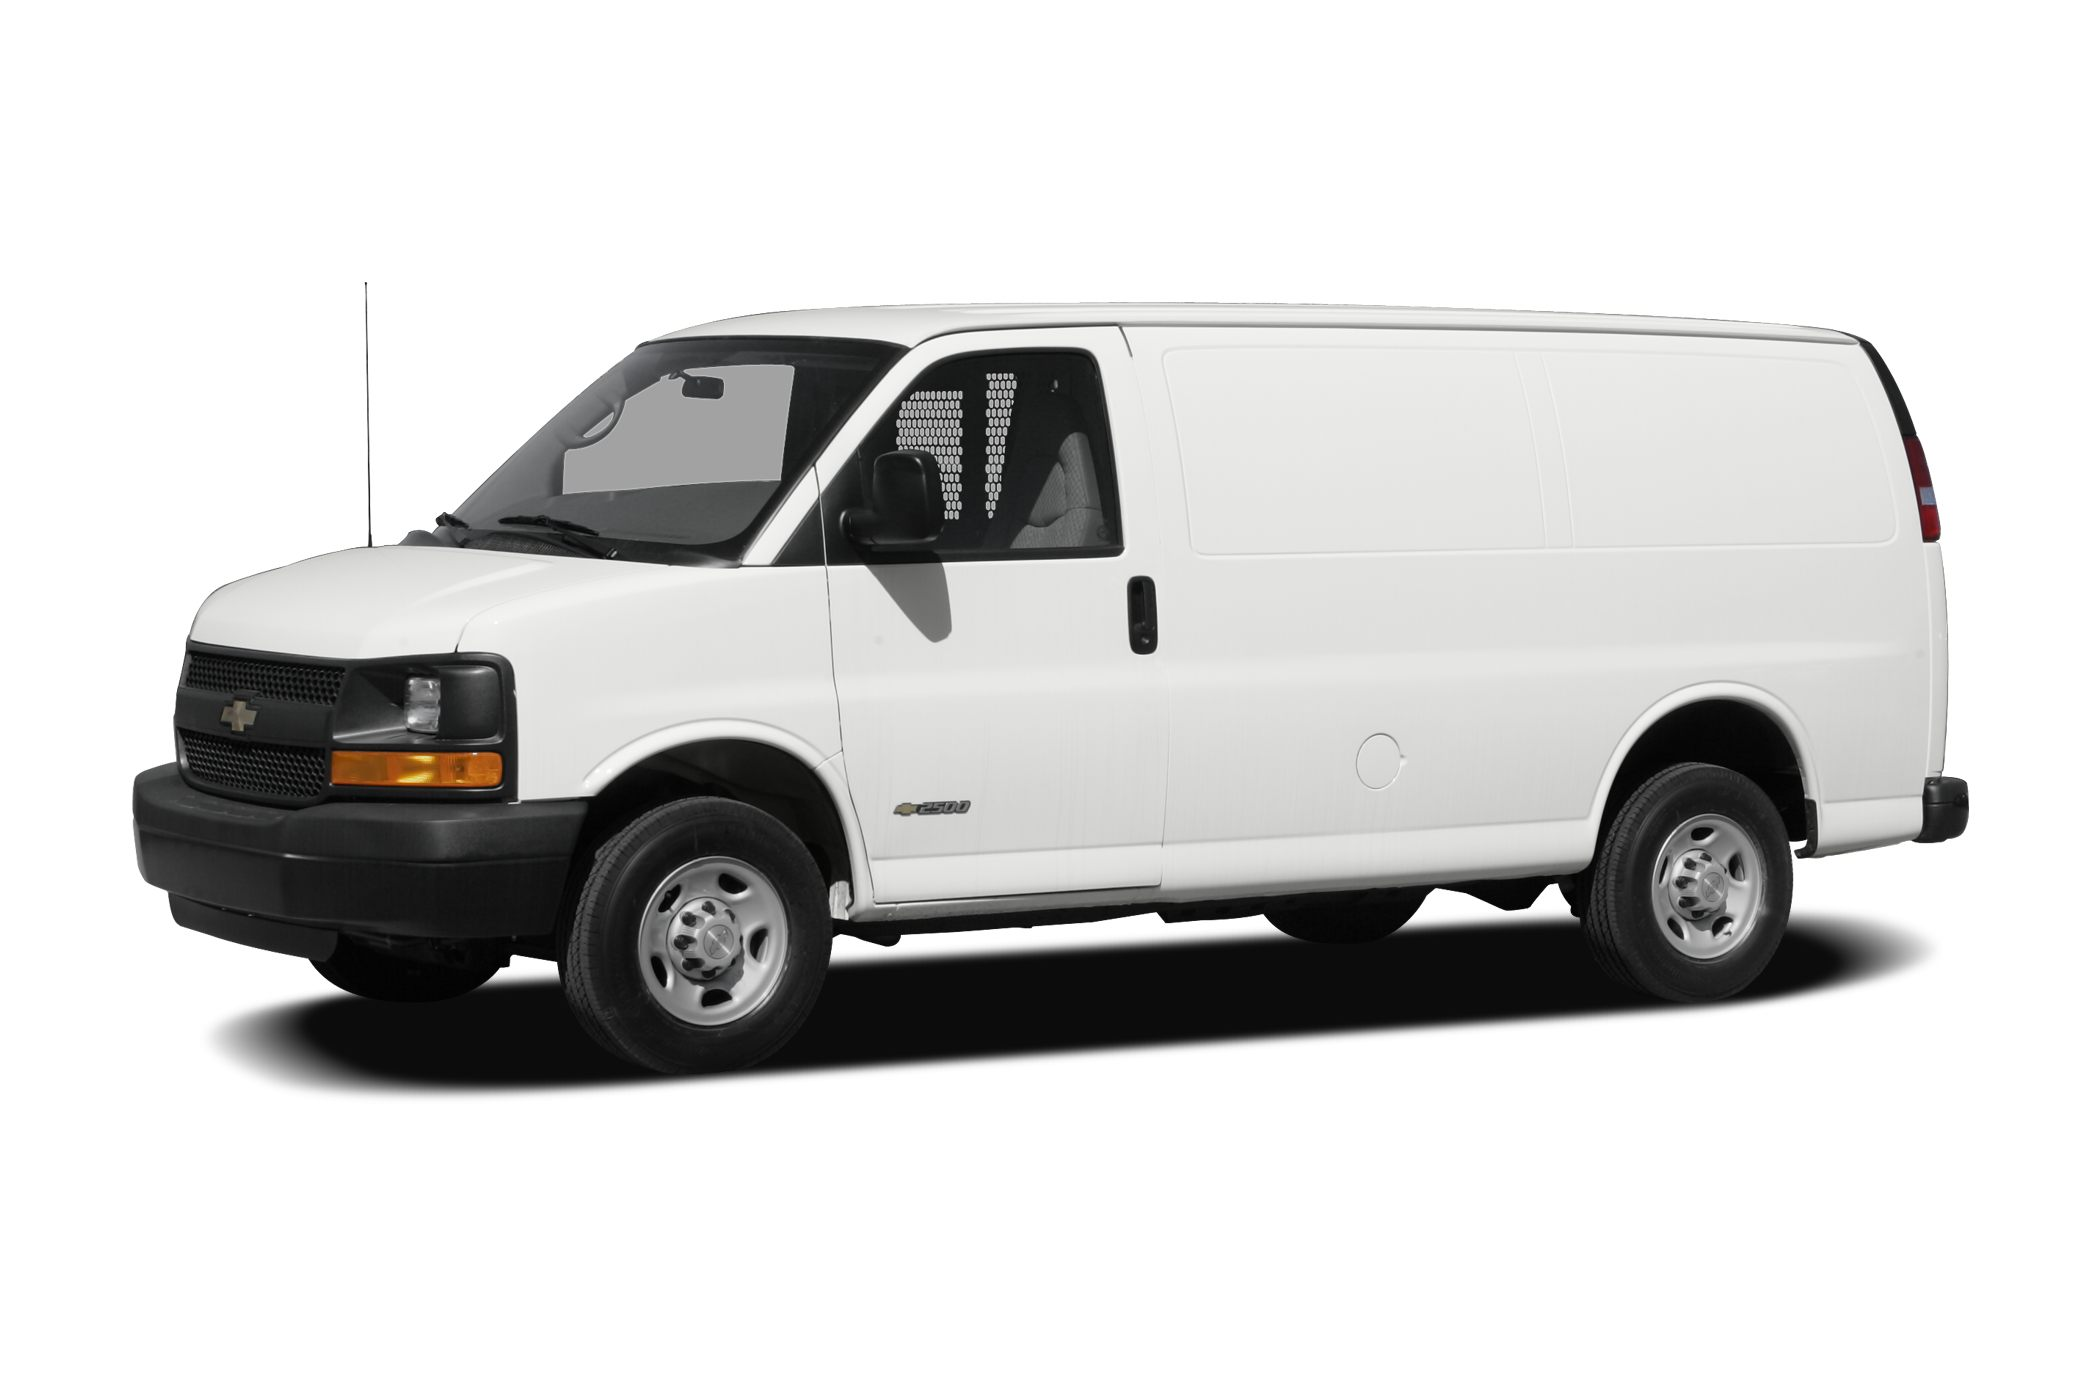 2008 Chevrolet Express 1500 Cargo Cargo Van for sale in Los Angeles for $0 with 154,647 miles